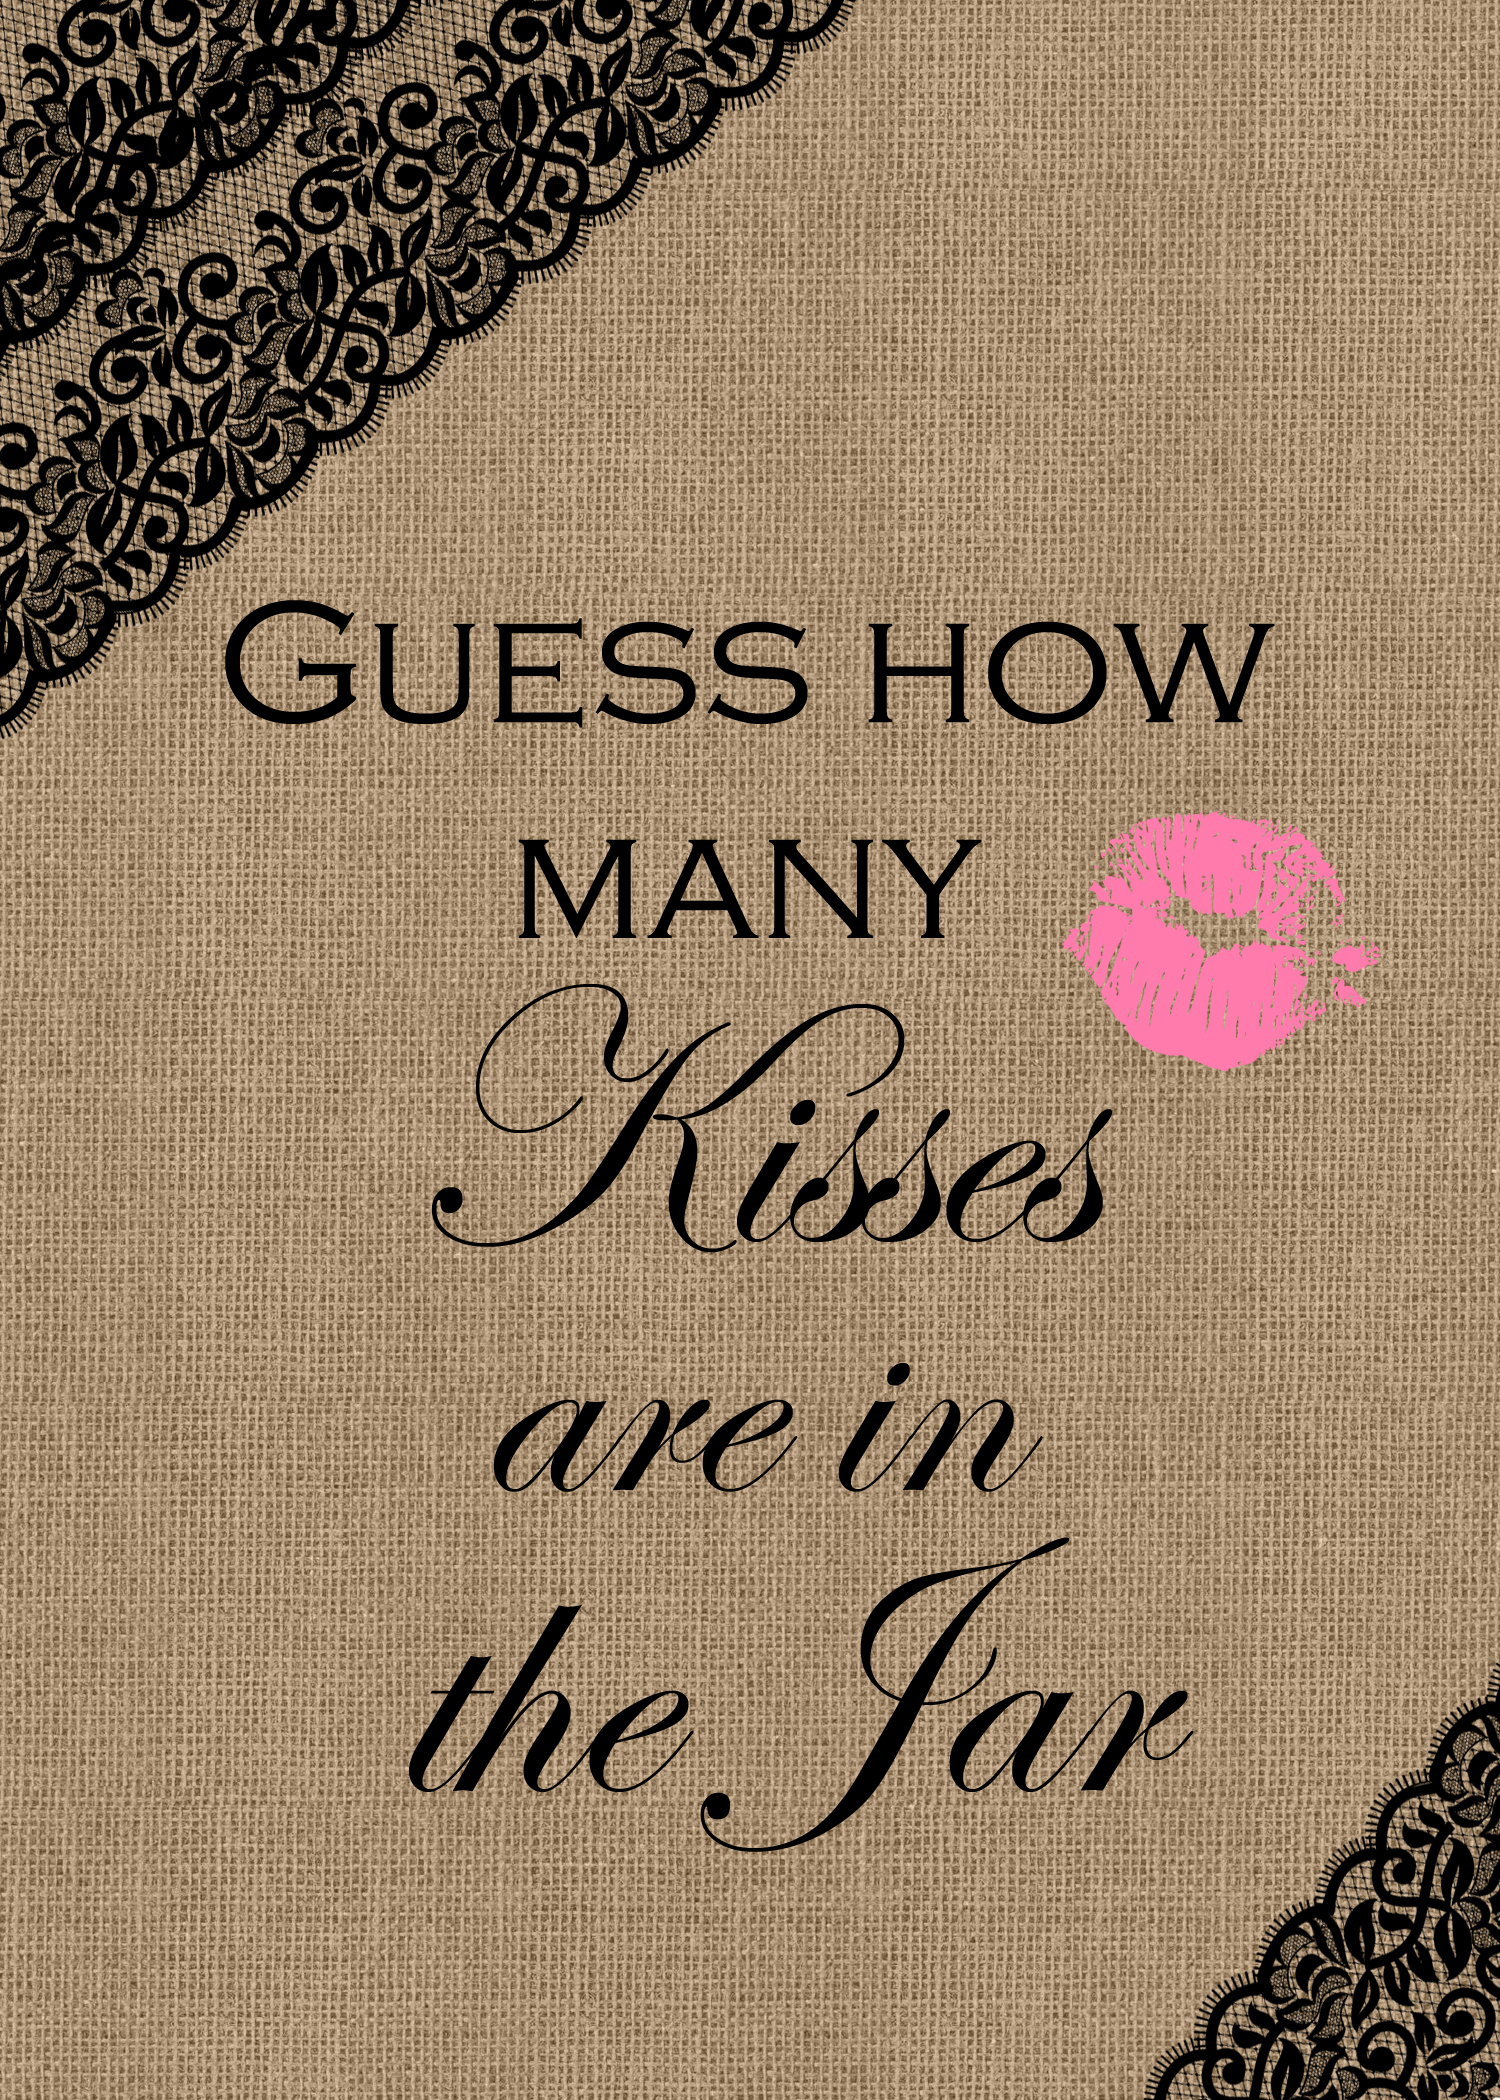 2_Free_Printable_Games Archives - Bridal Shower Ideas - Themes - How Many Kisses Game Free Printable